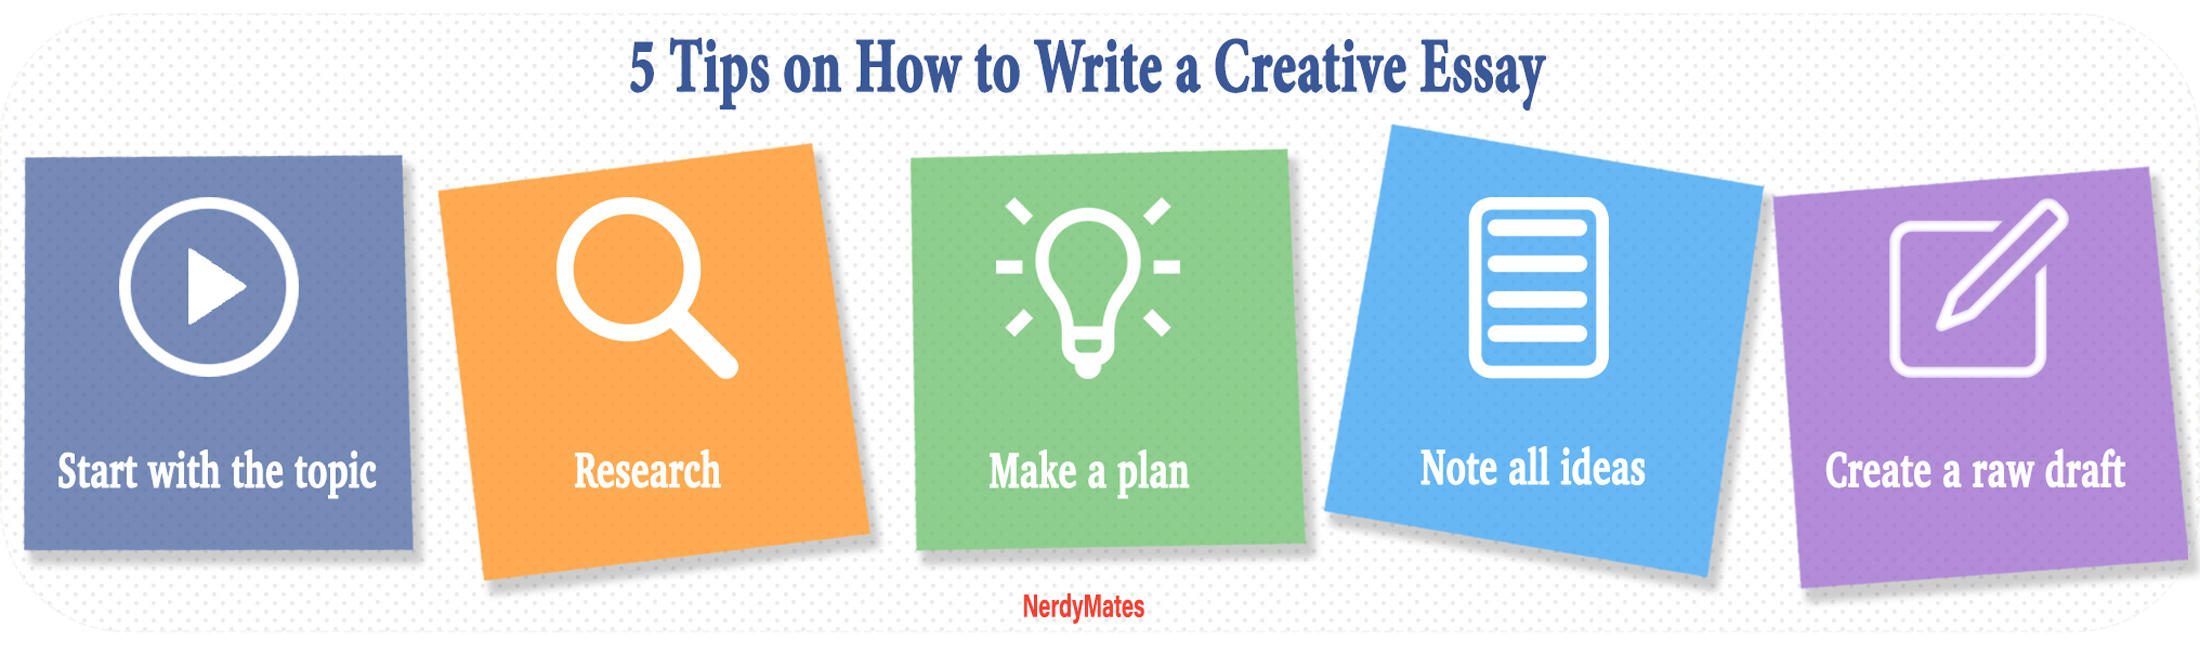 the ultimate guide on how to write a creative essay com here are some steps you should consider if there is a desire to learn how to write creative writing essays